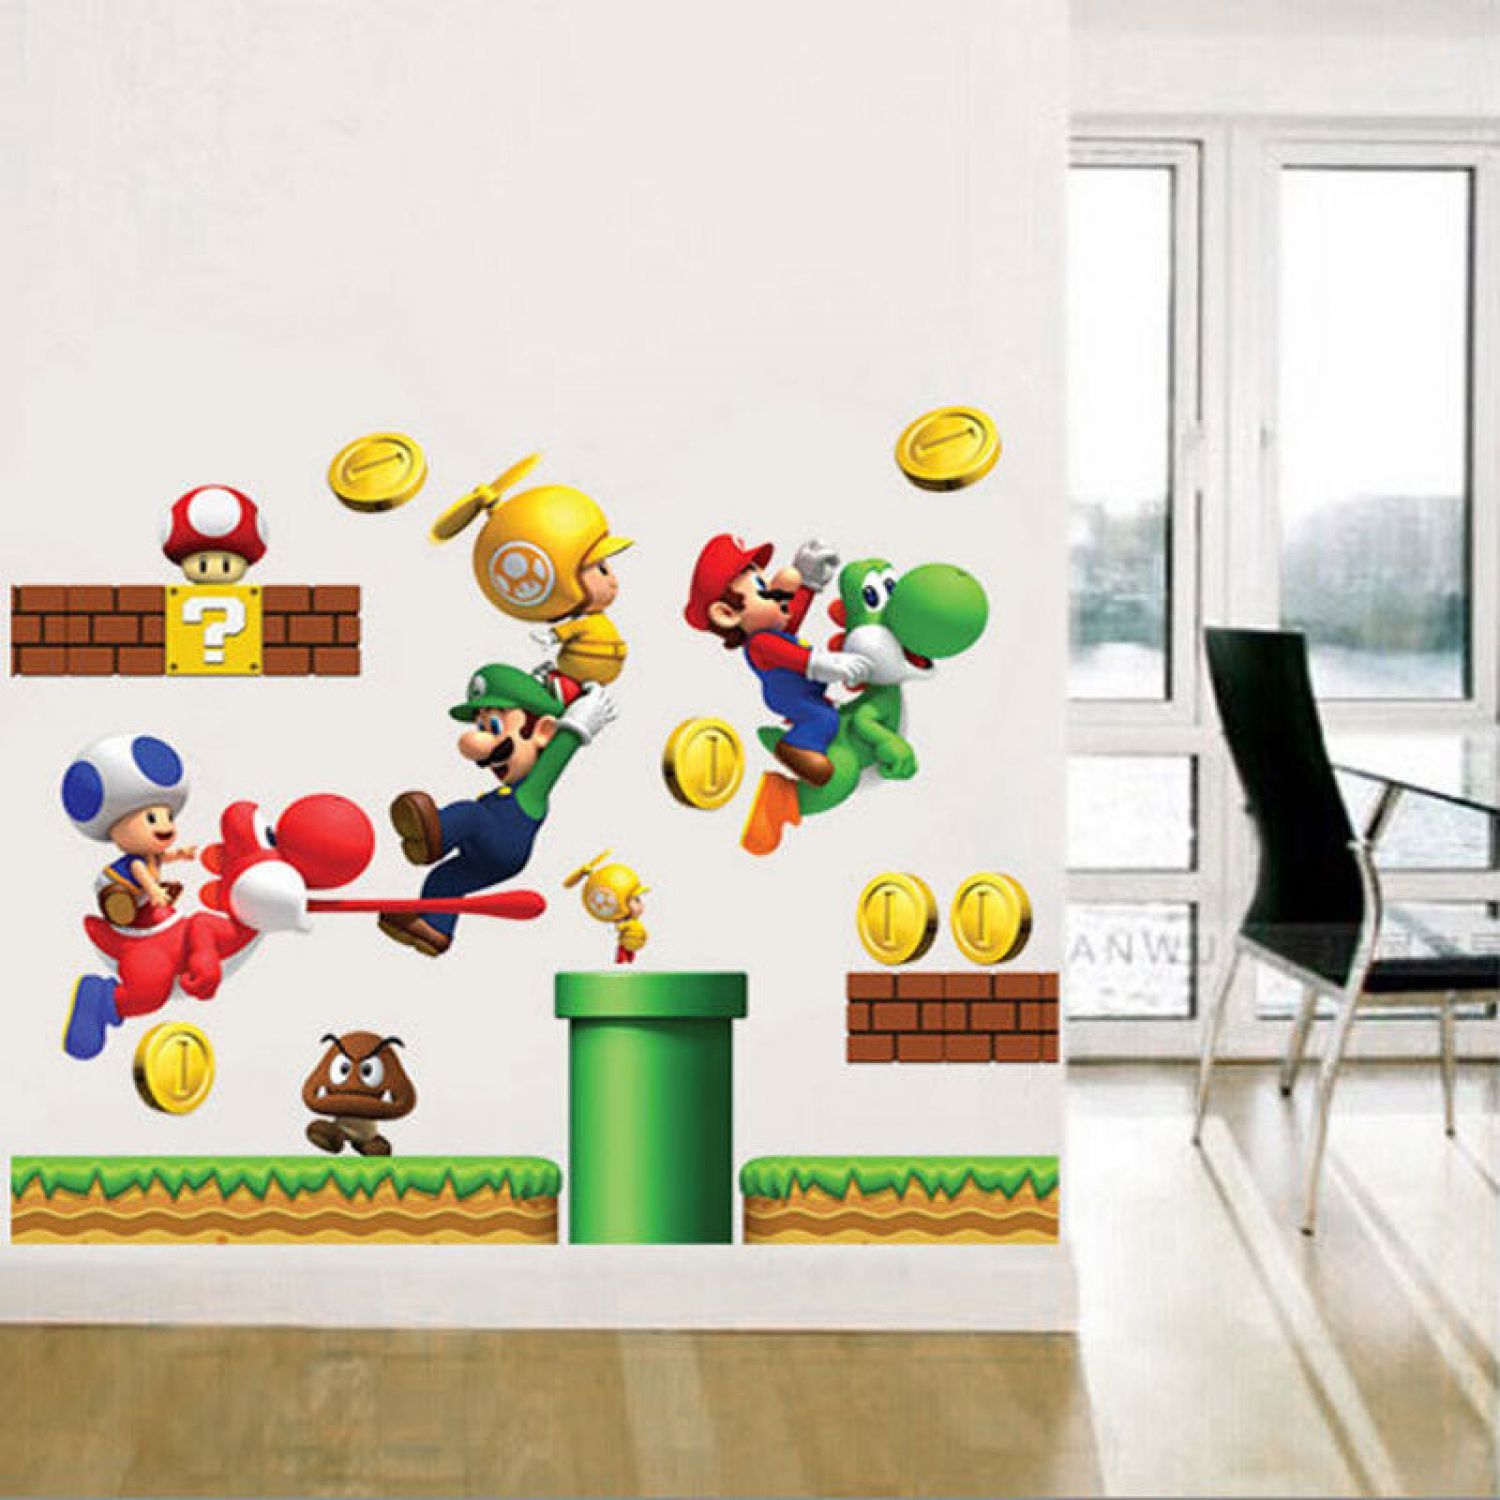 super mario world 3d wandsticker wandtattoo dino aufkleber kinderzimmer sticker ebay. Black Bedroom Furniture Sets. Home Design Ideas